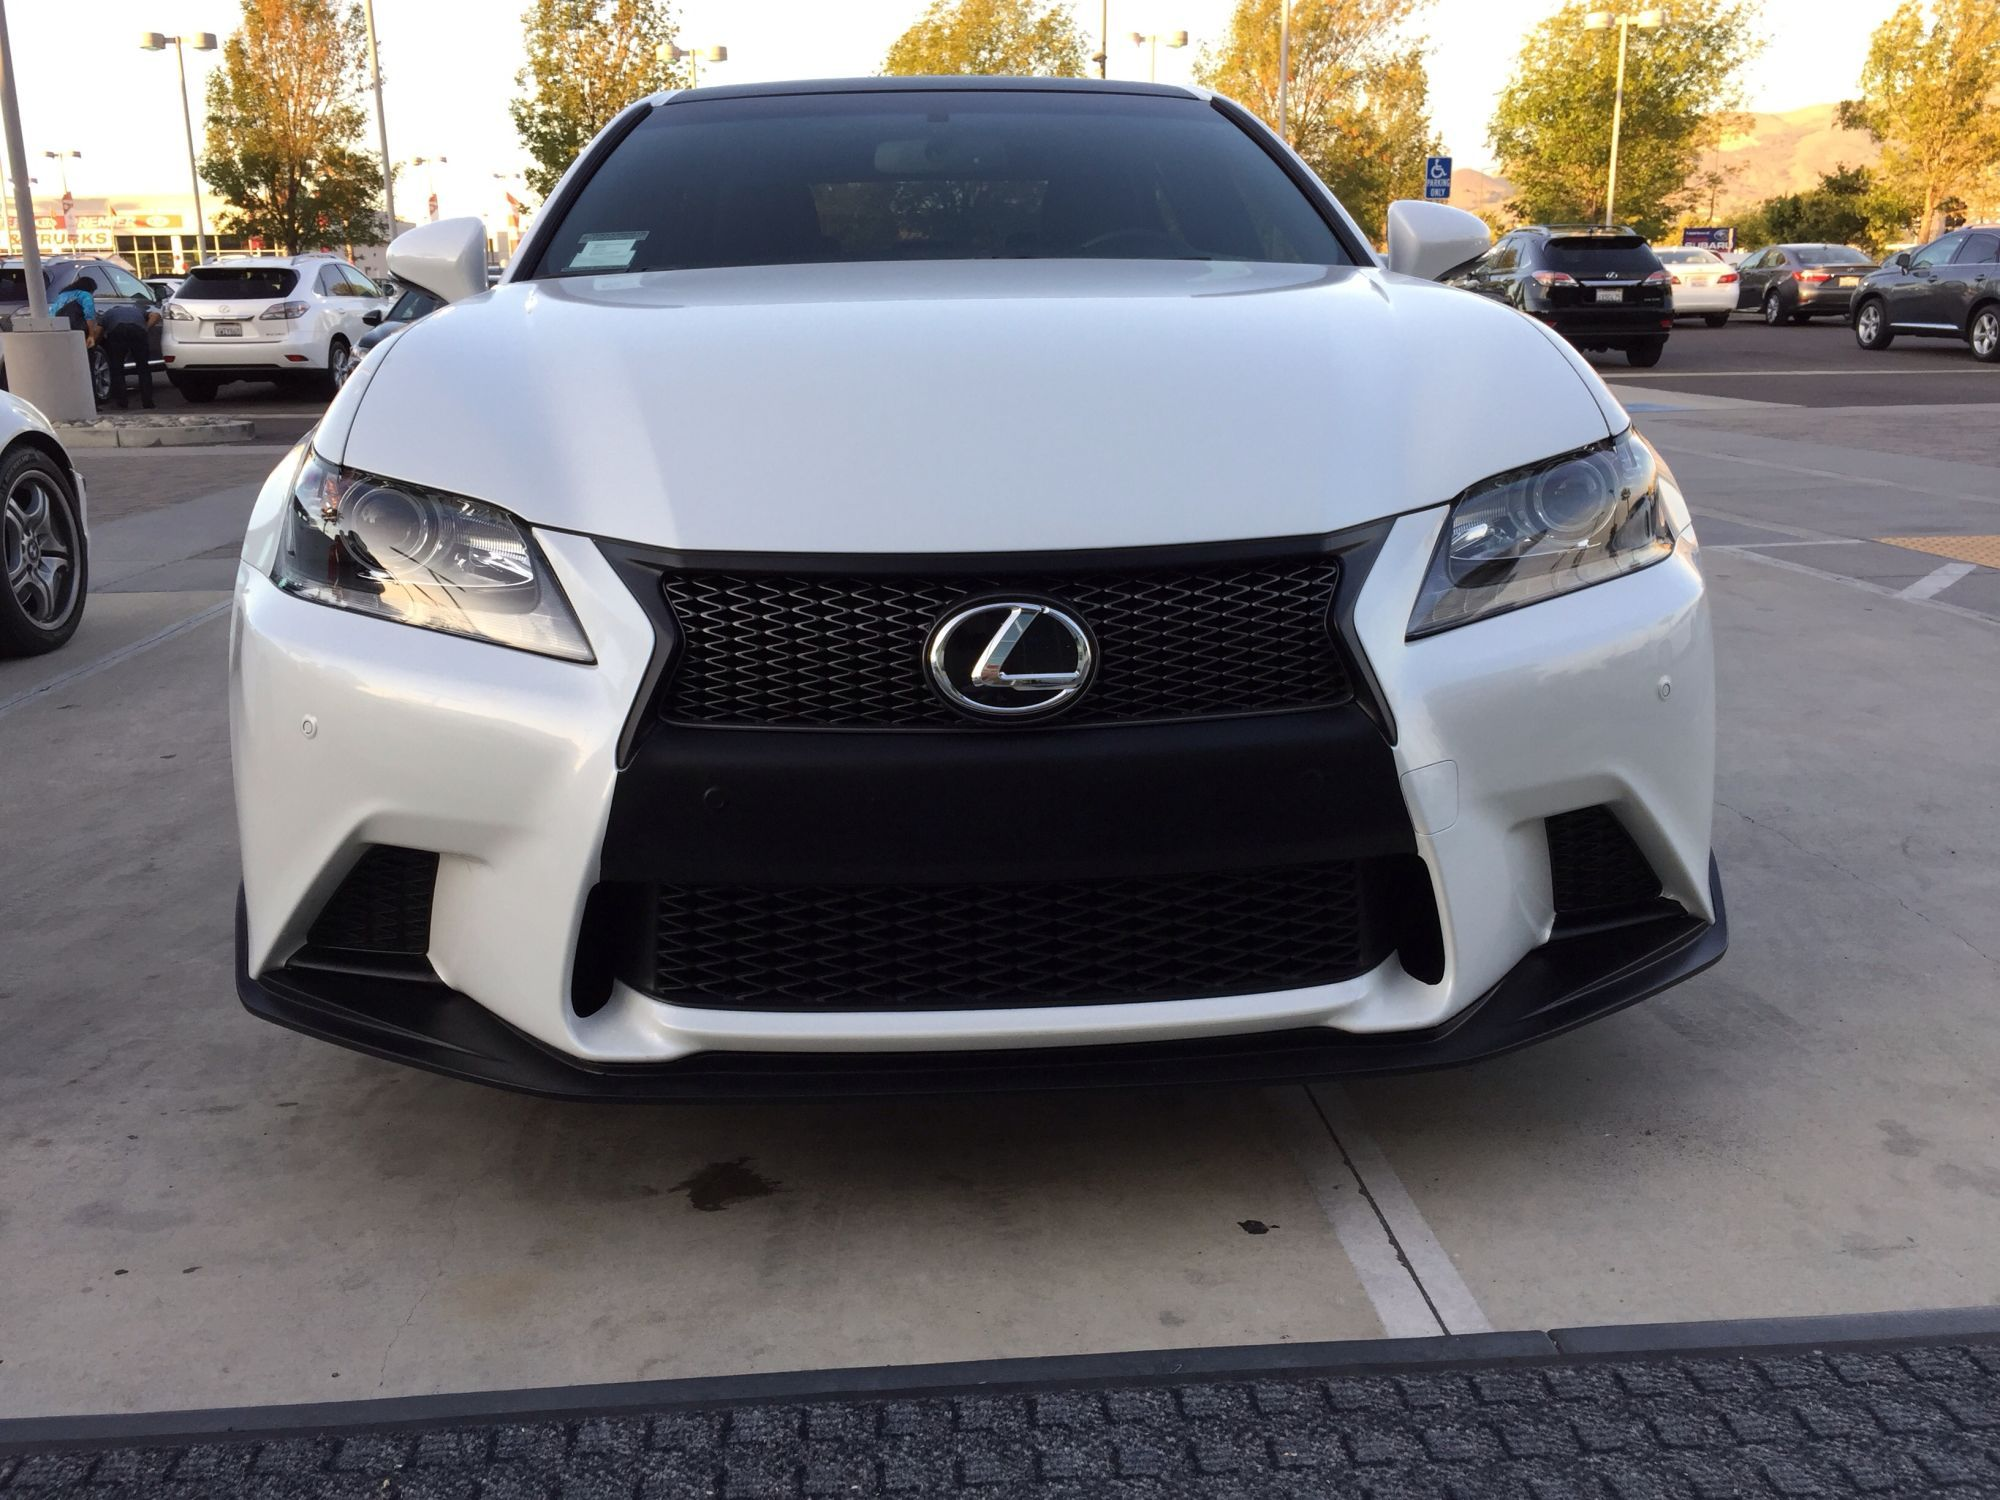 GS 350 front bumper black to match sport grill - Club Lexus Forums